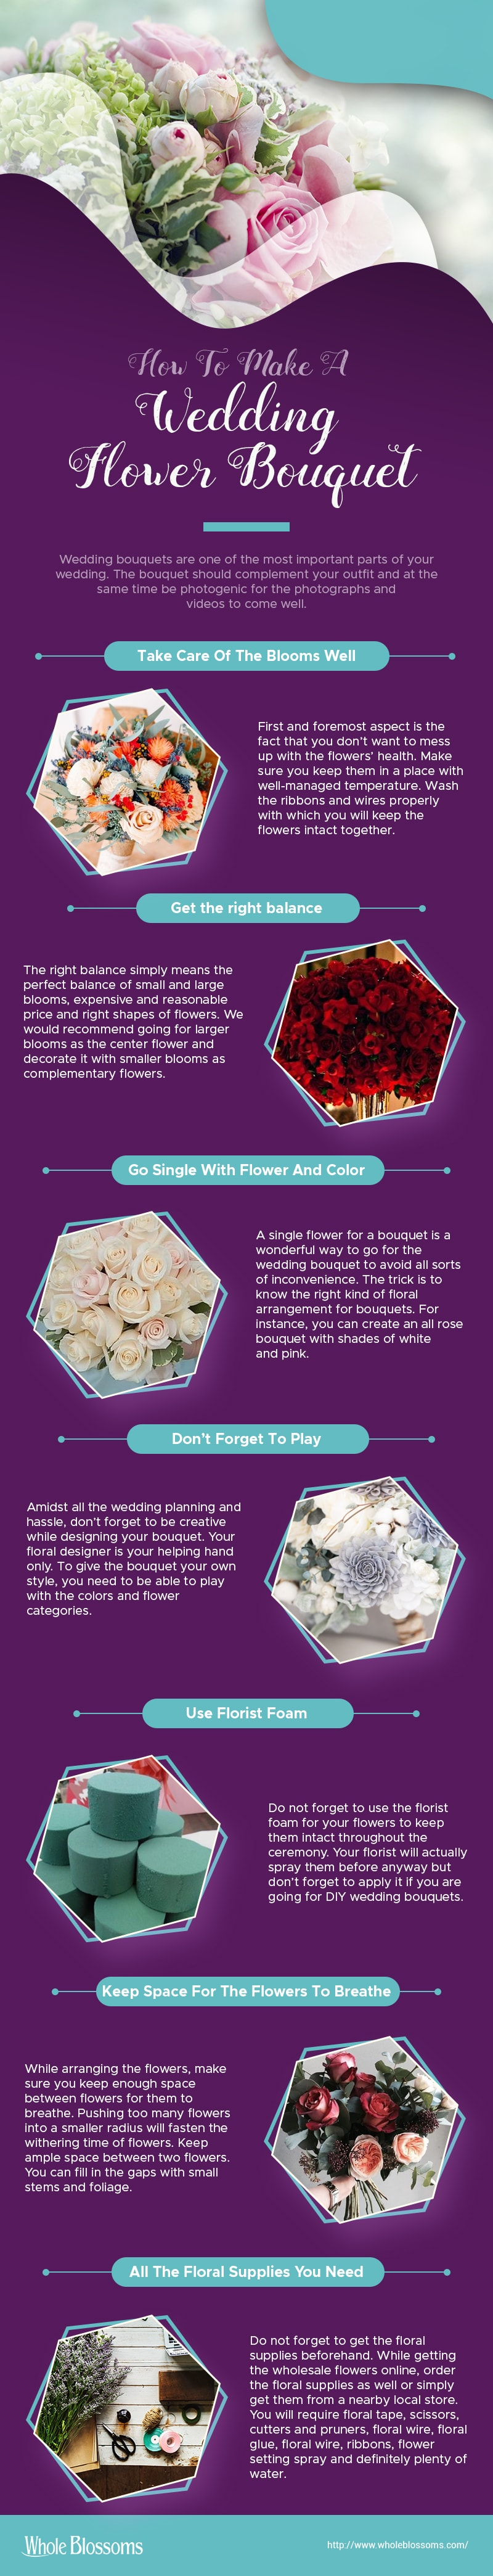 How to make a Wedding Flower Bouquet